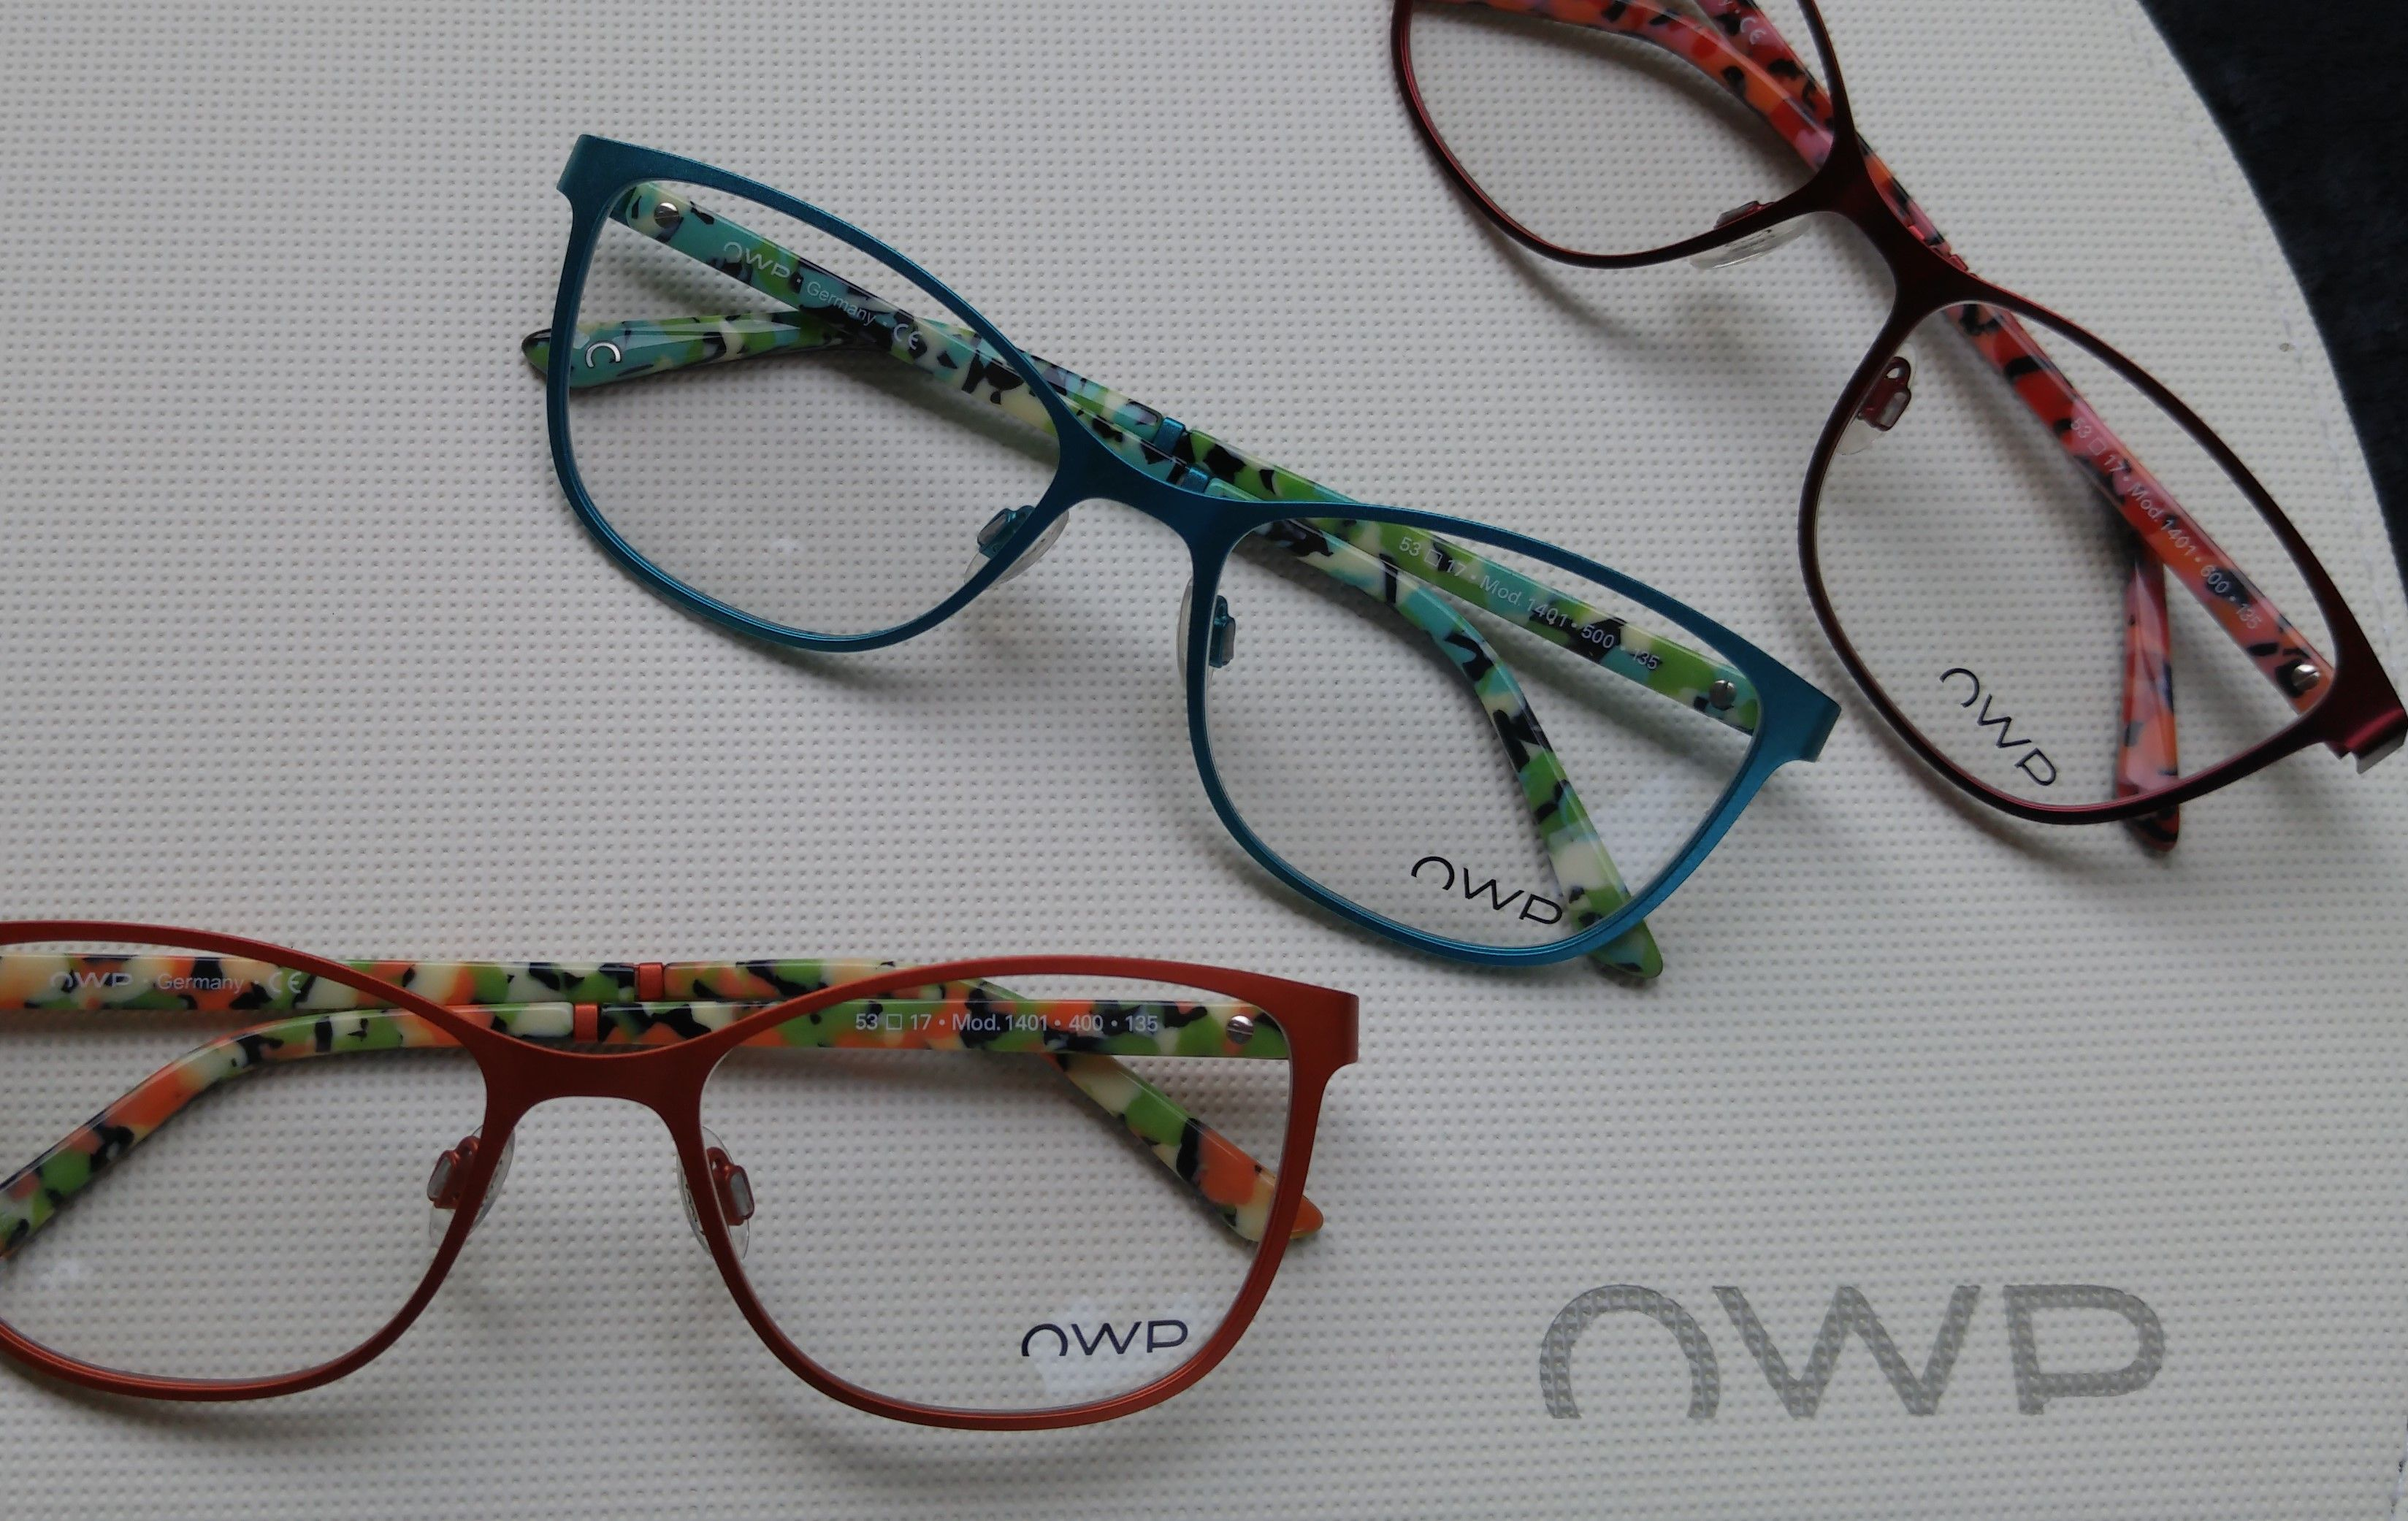 dc1cf65779f OWP 1401 Available at Bellevue Optical Women s Eyewear